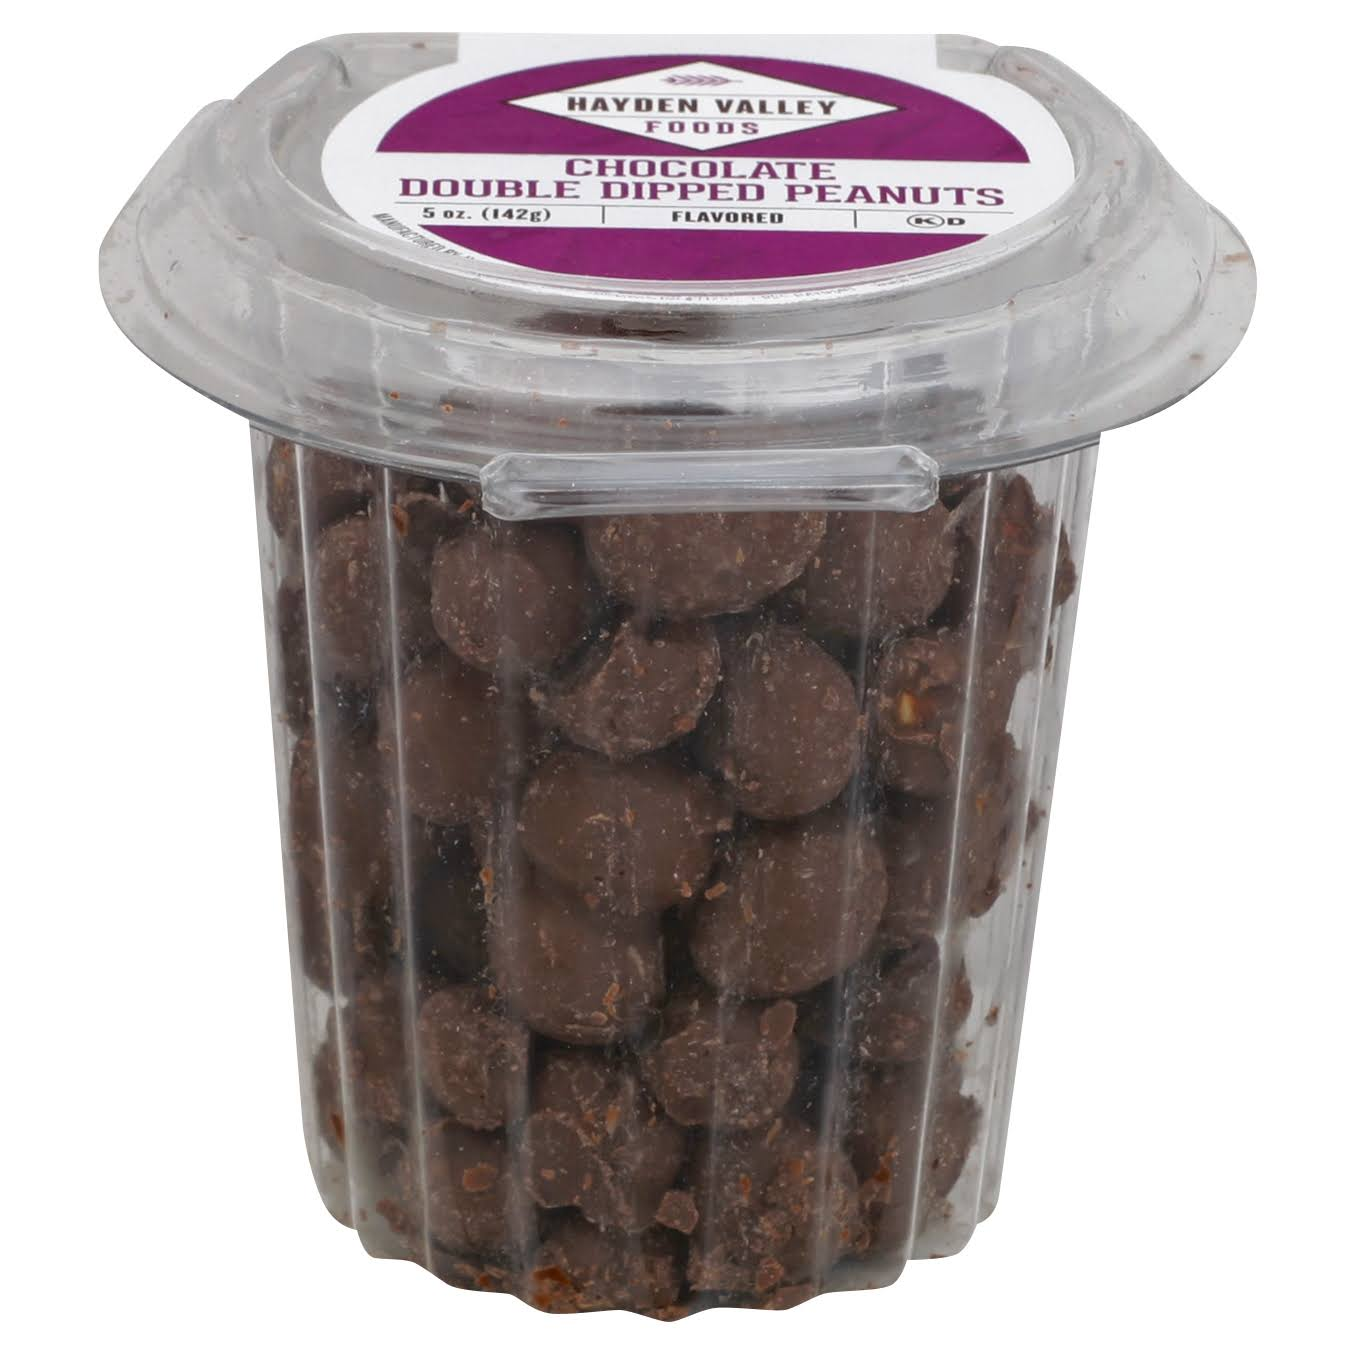 Hayden Valley Peanuts, Chocolate Double Dipped - 5 oz